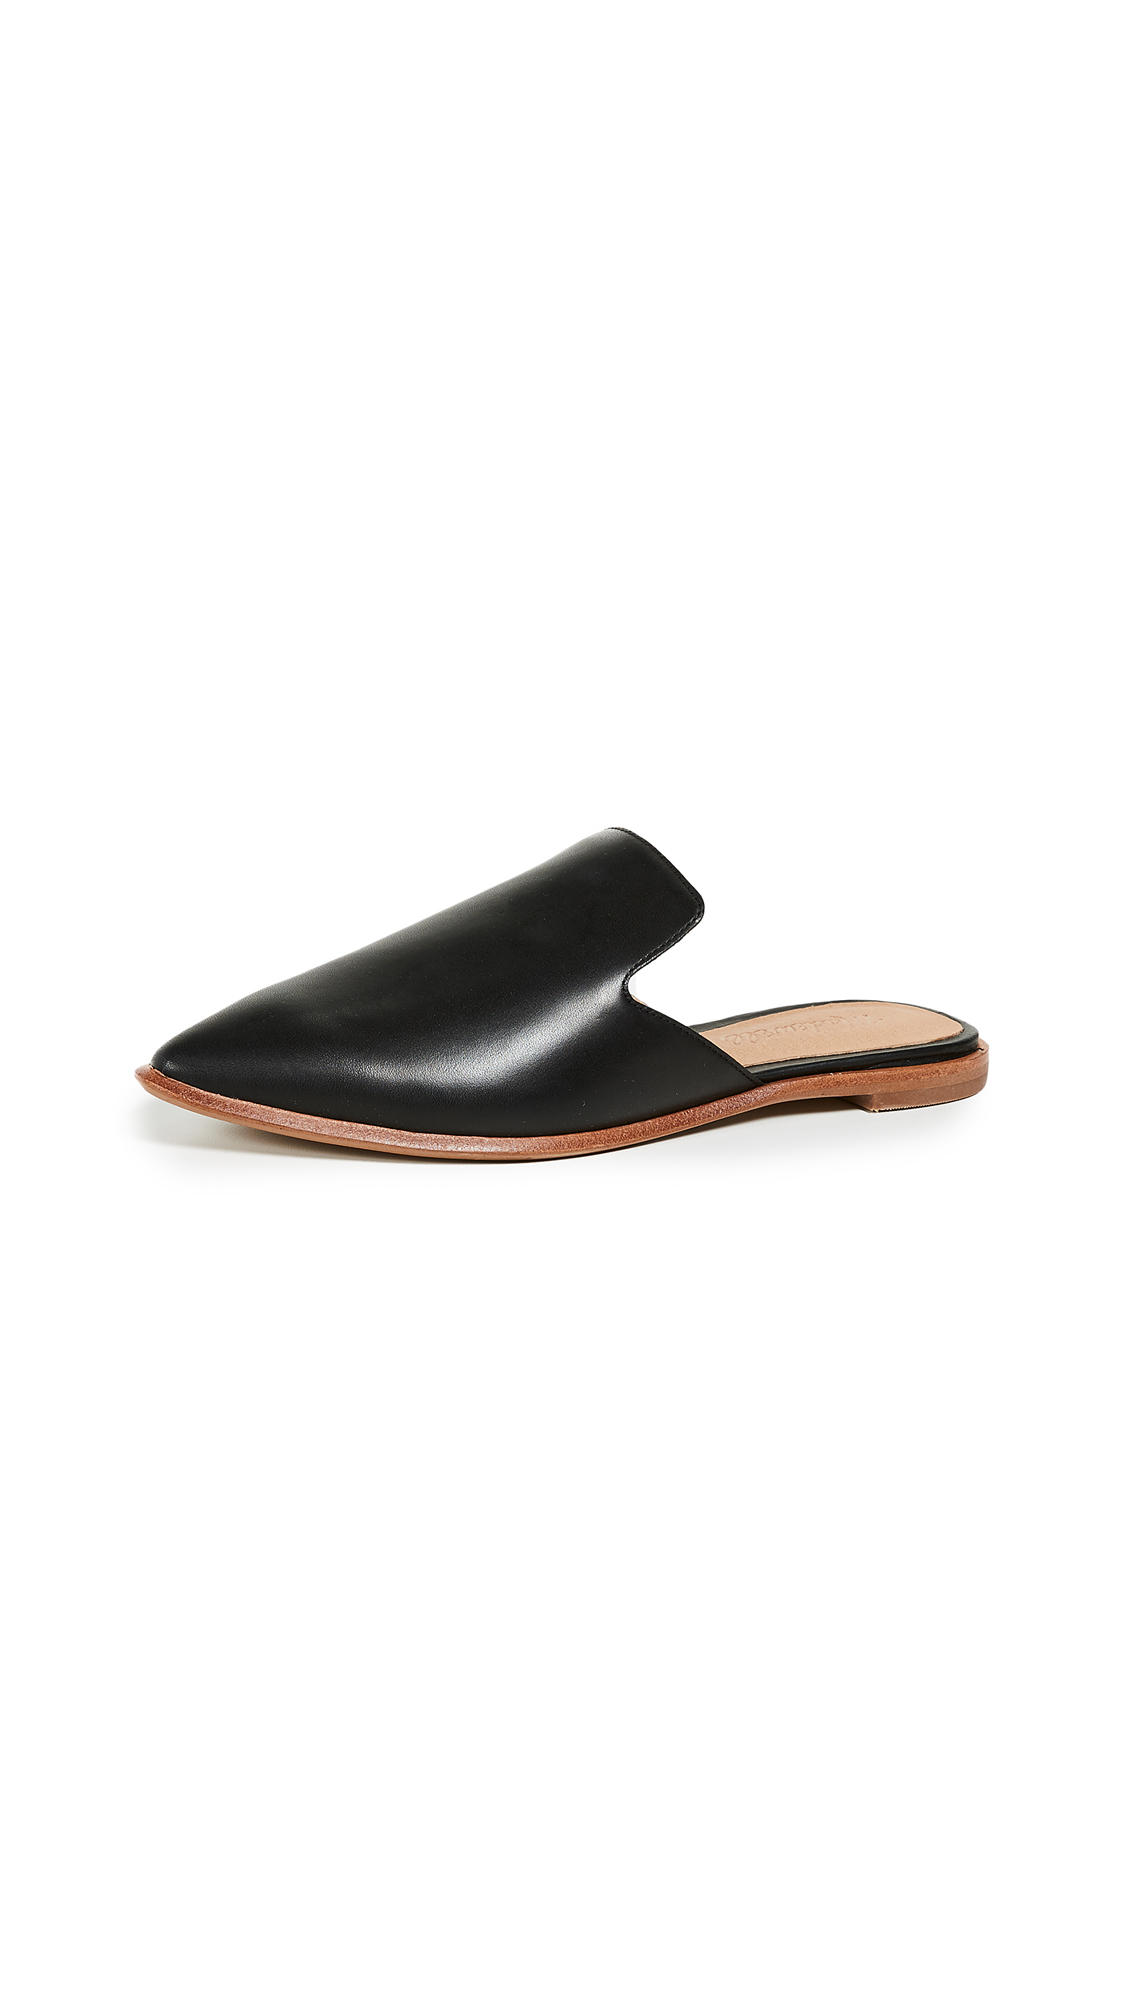 Buy Madewell Gemma Mules online, shop Madewell